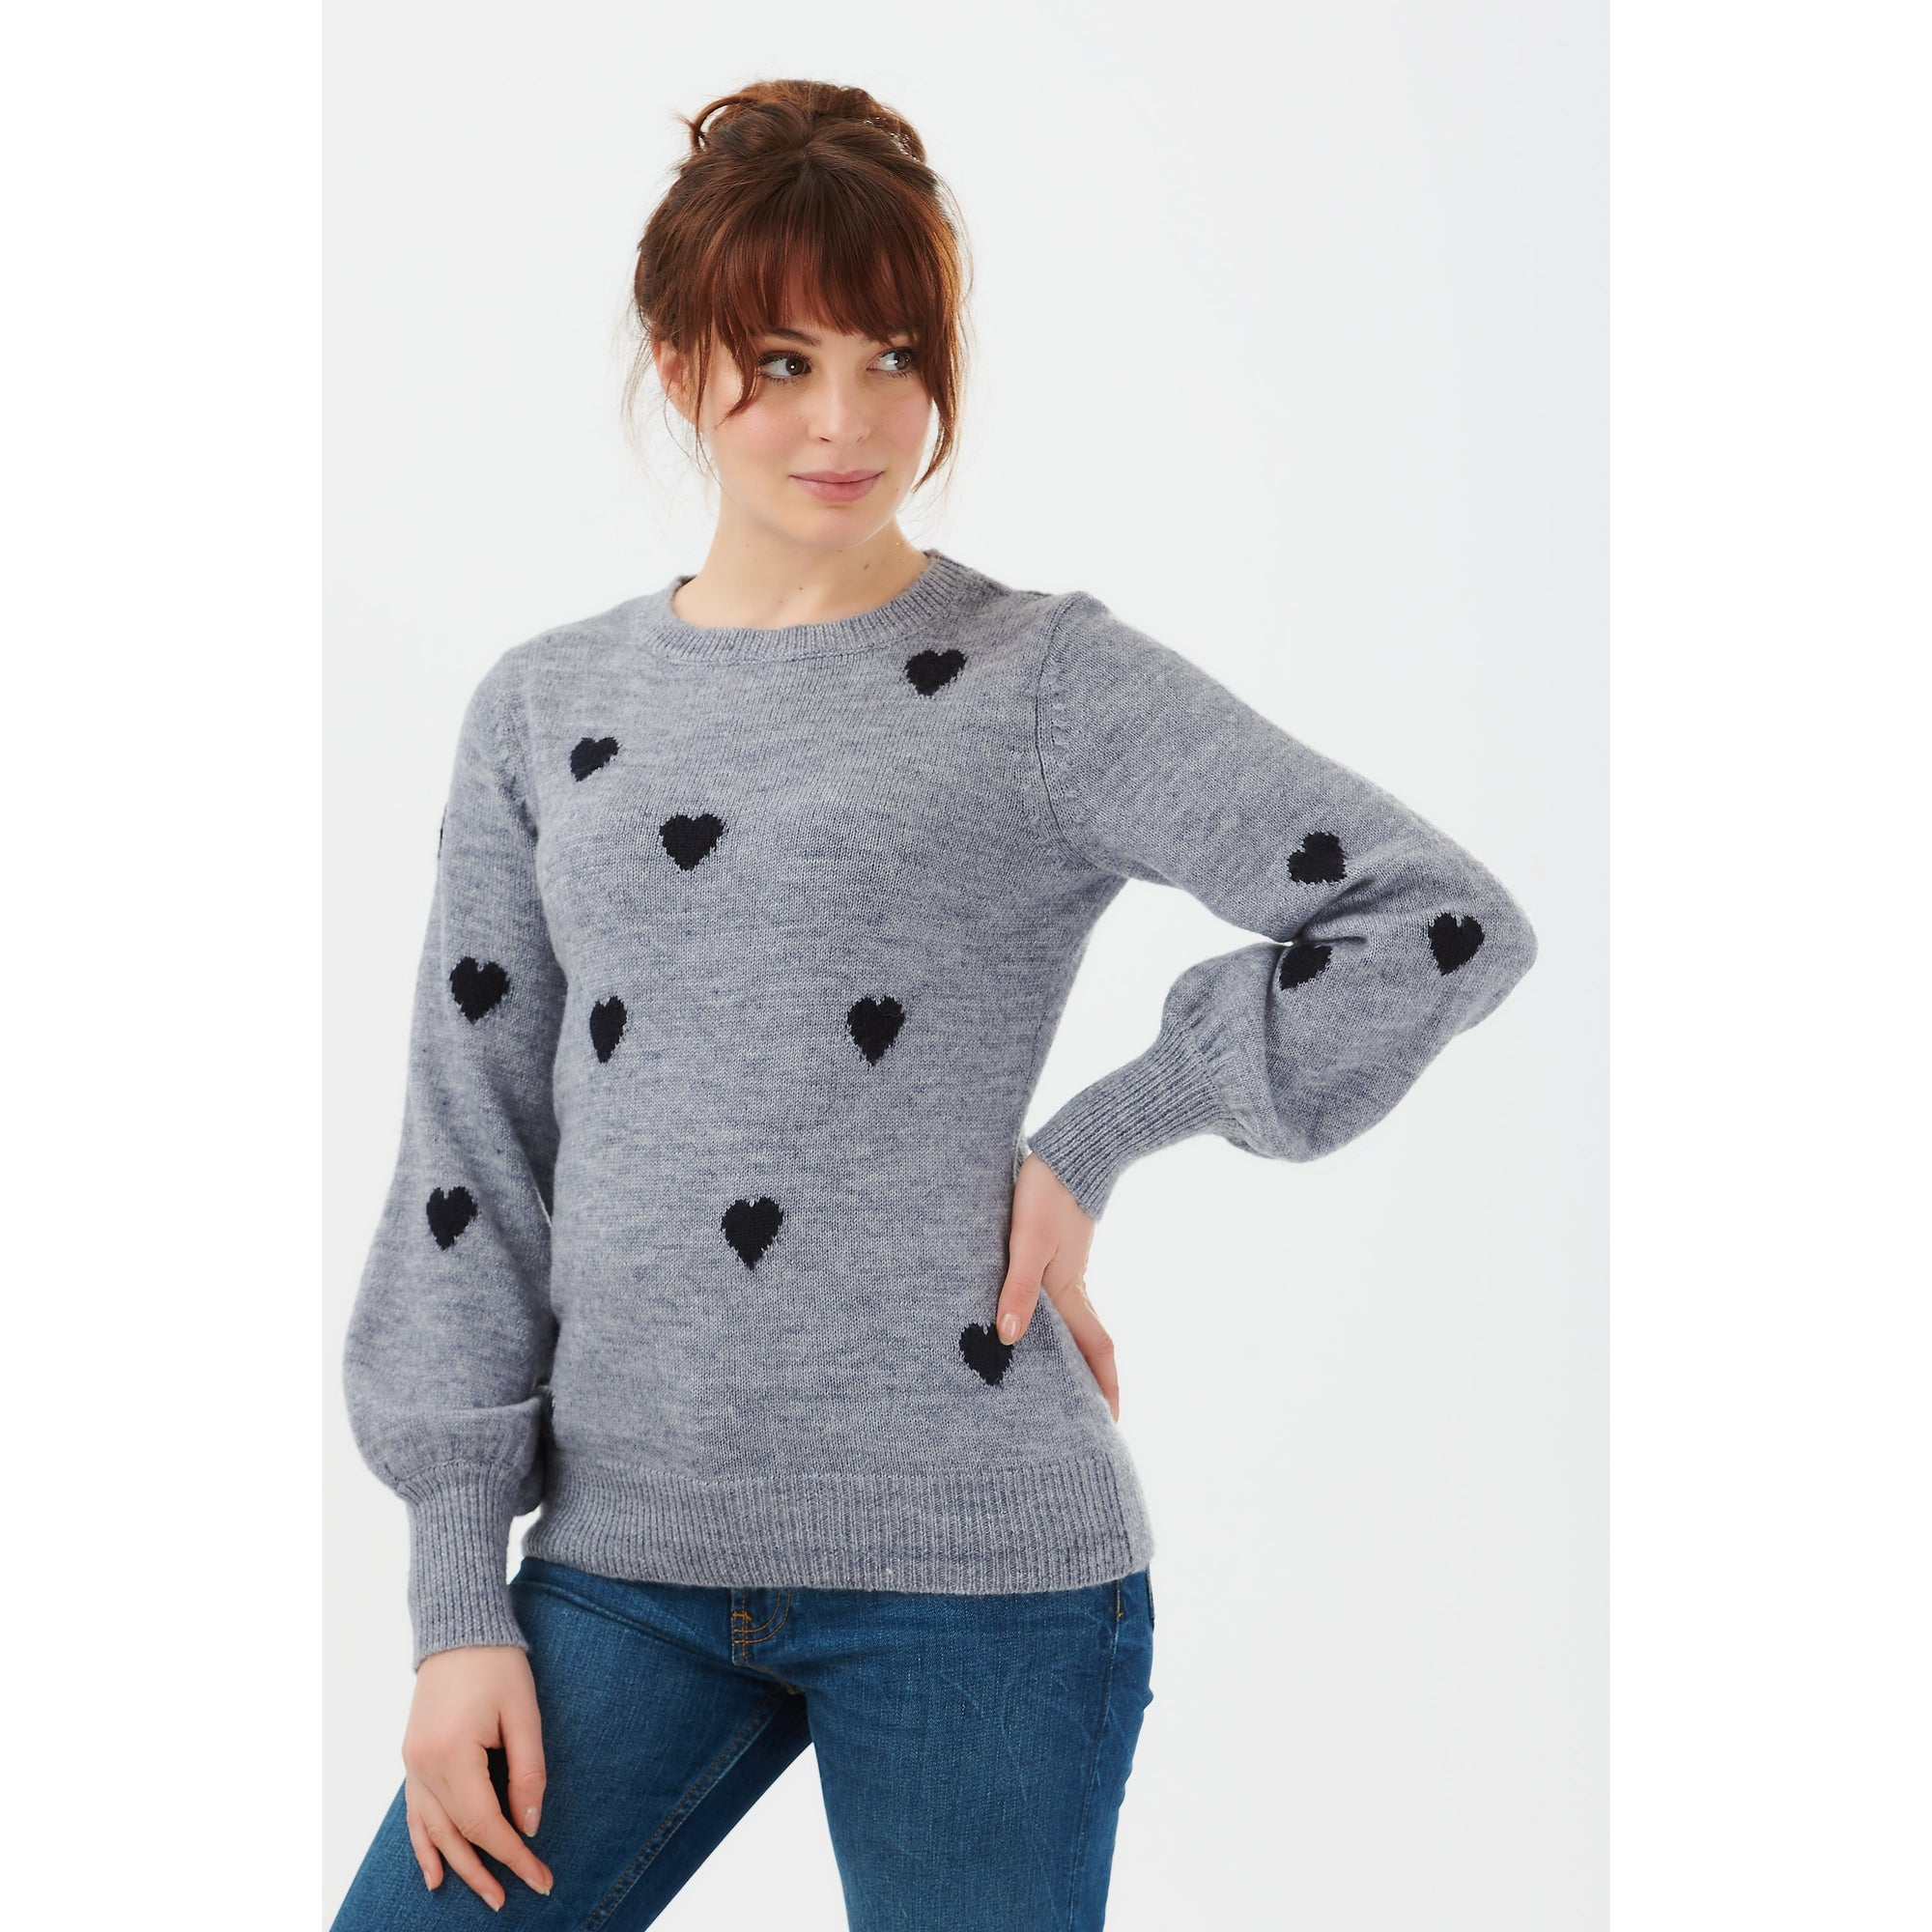 Sugarhill Brighton Mandy Love Heart Sweater in Blue/Navy